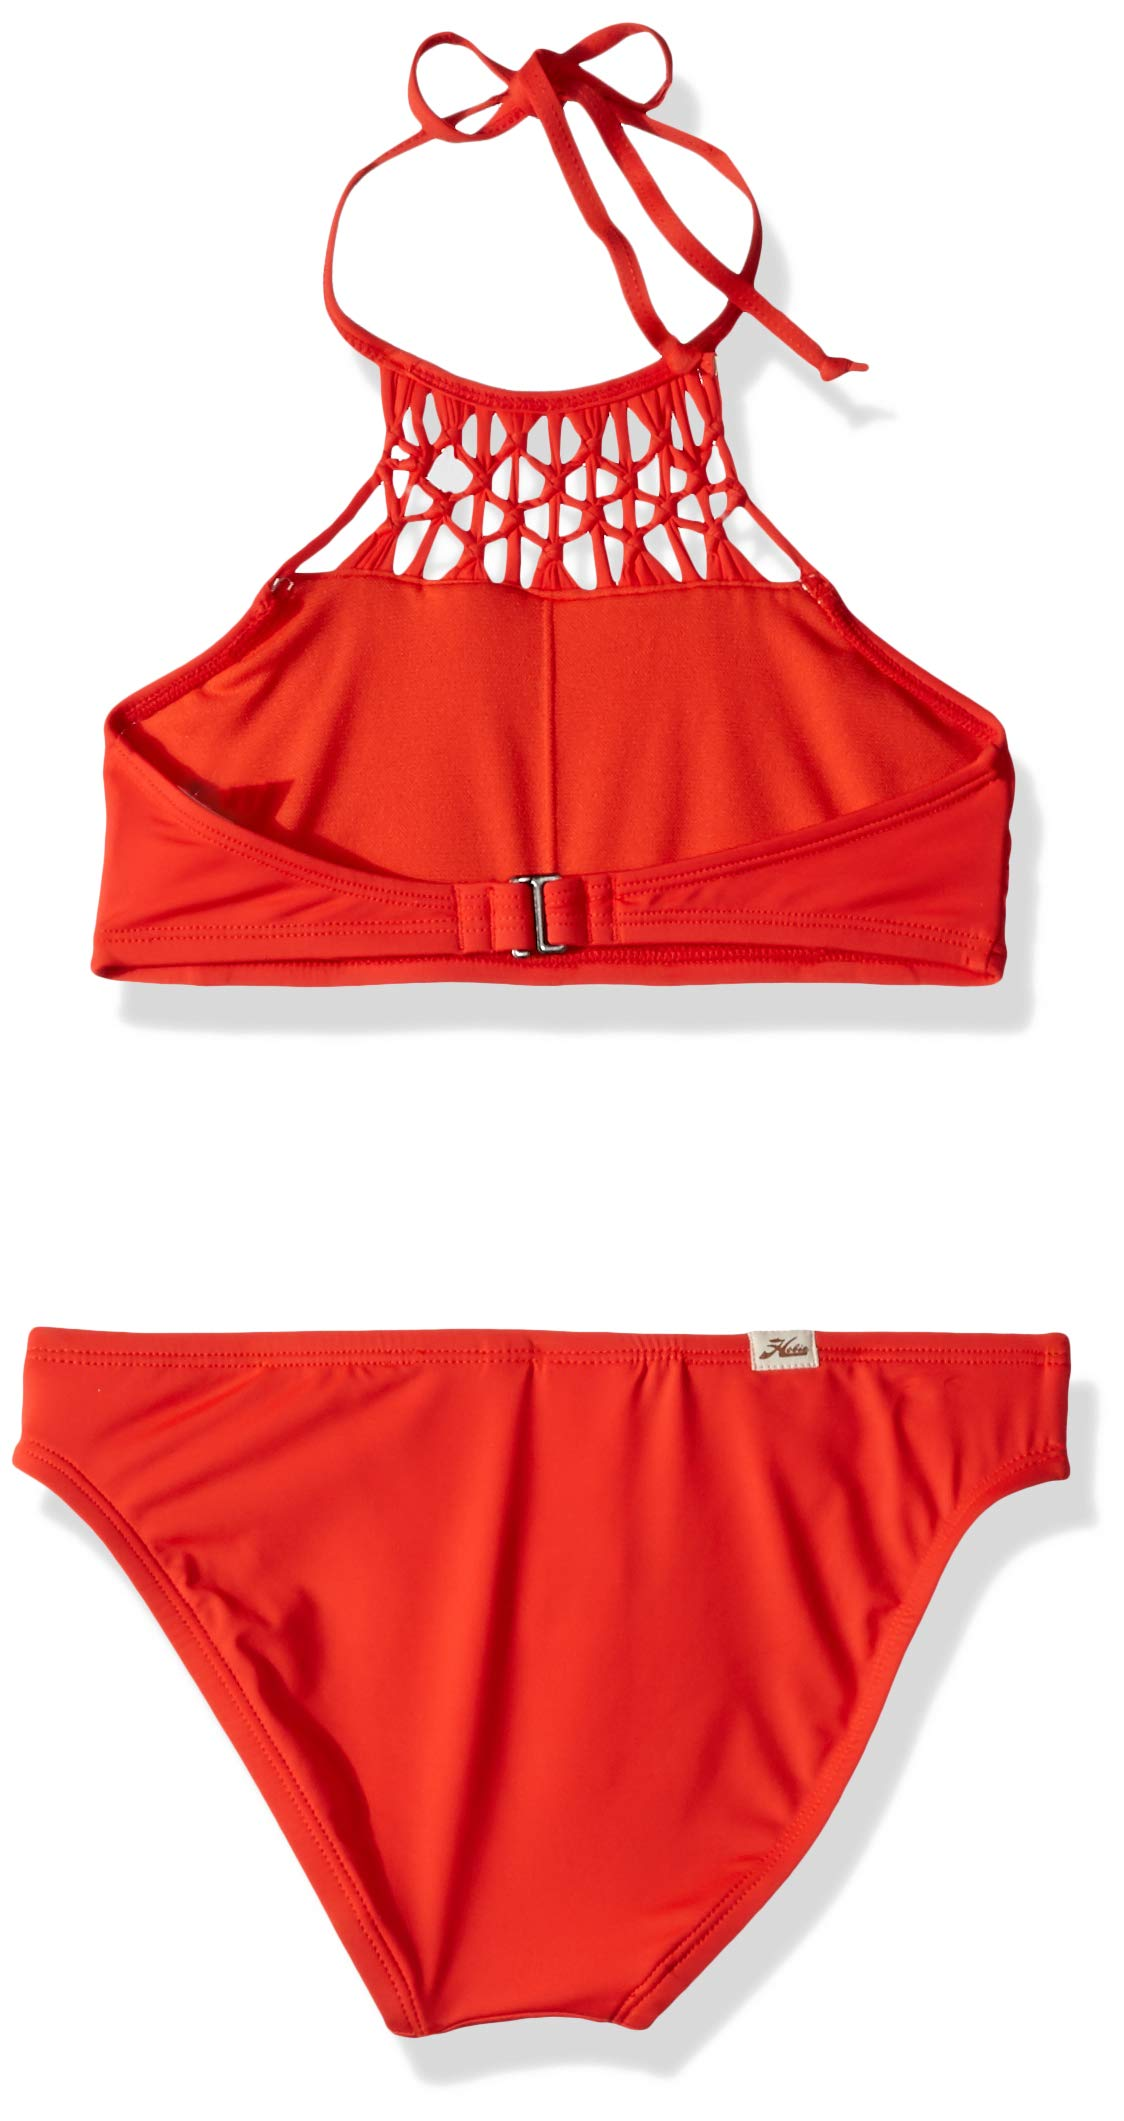 Hobie Big Girls' High Neck Bikini Top and Hipster Bottom Swimsuit Set, Watermelon//Solids, 12 by Hobie (Image #2)